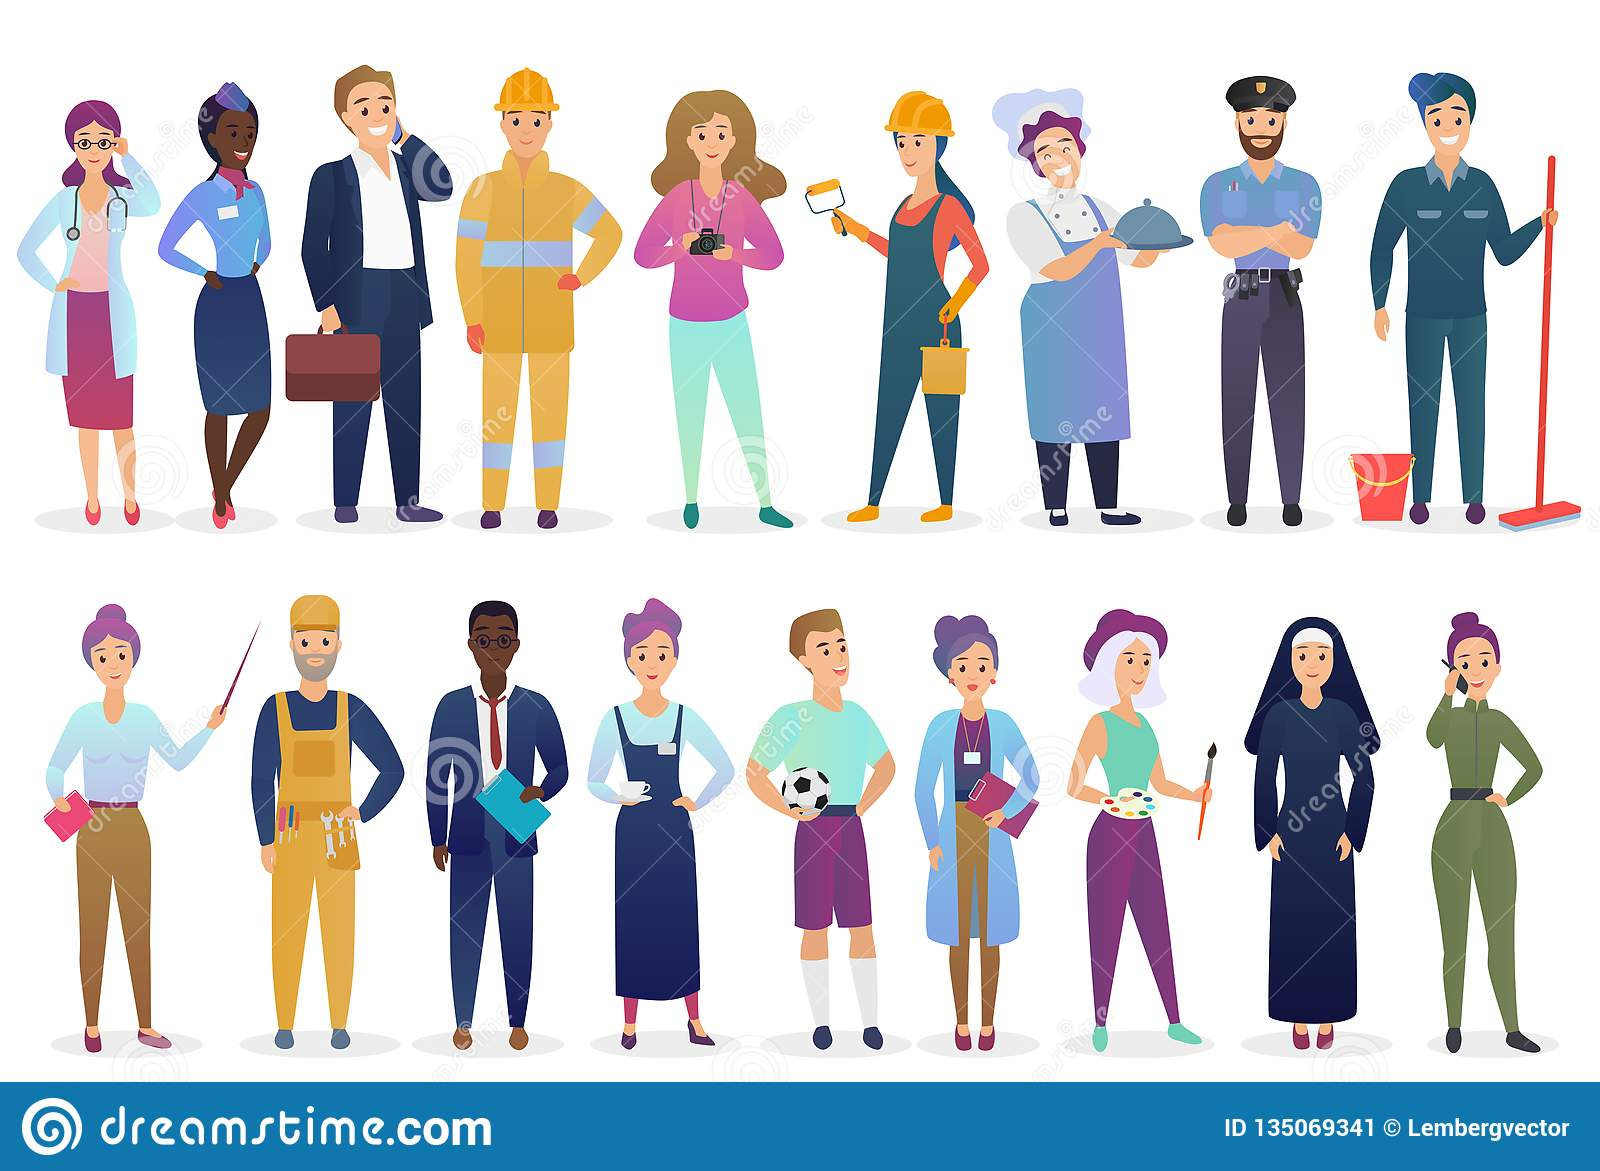 Professional Workers People Set Standing Together. Different Occupation  Employment and Teamwork Vector Illustration. Stock Vector - Illustration of  employers, occupation: 135069341